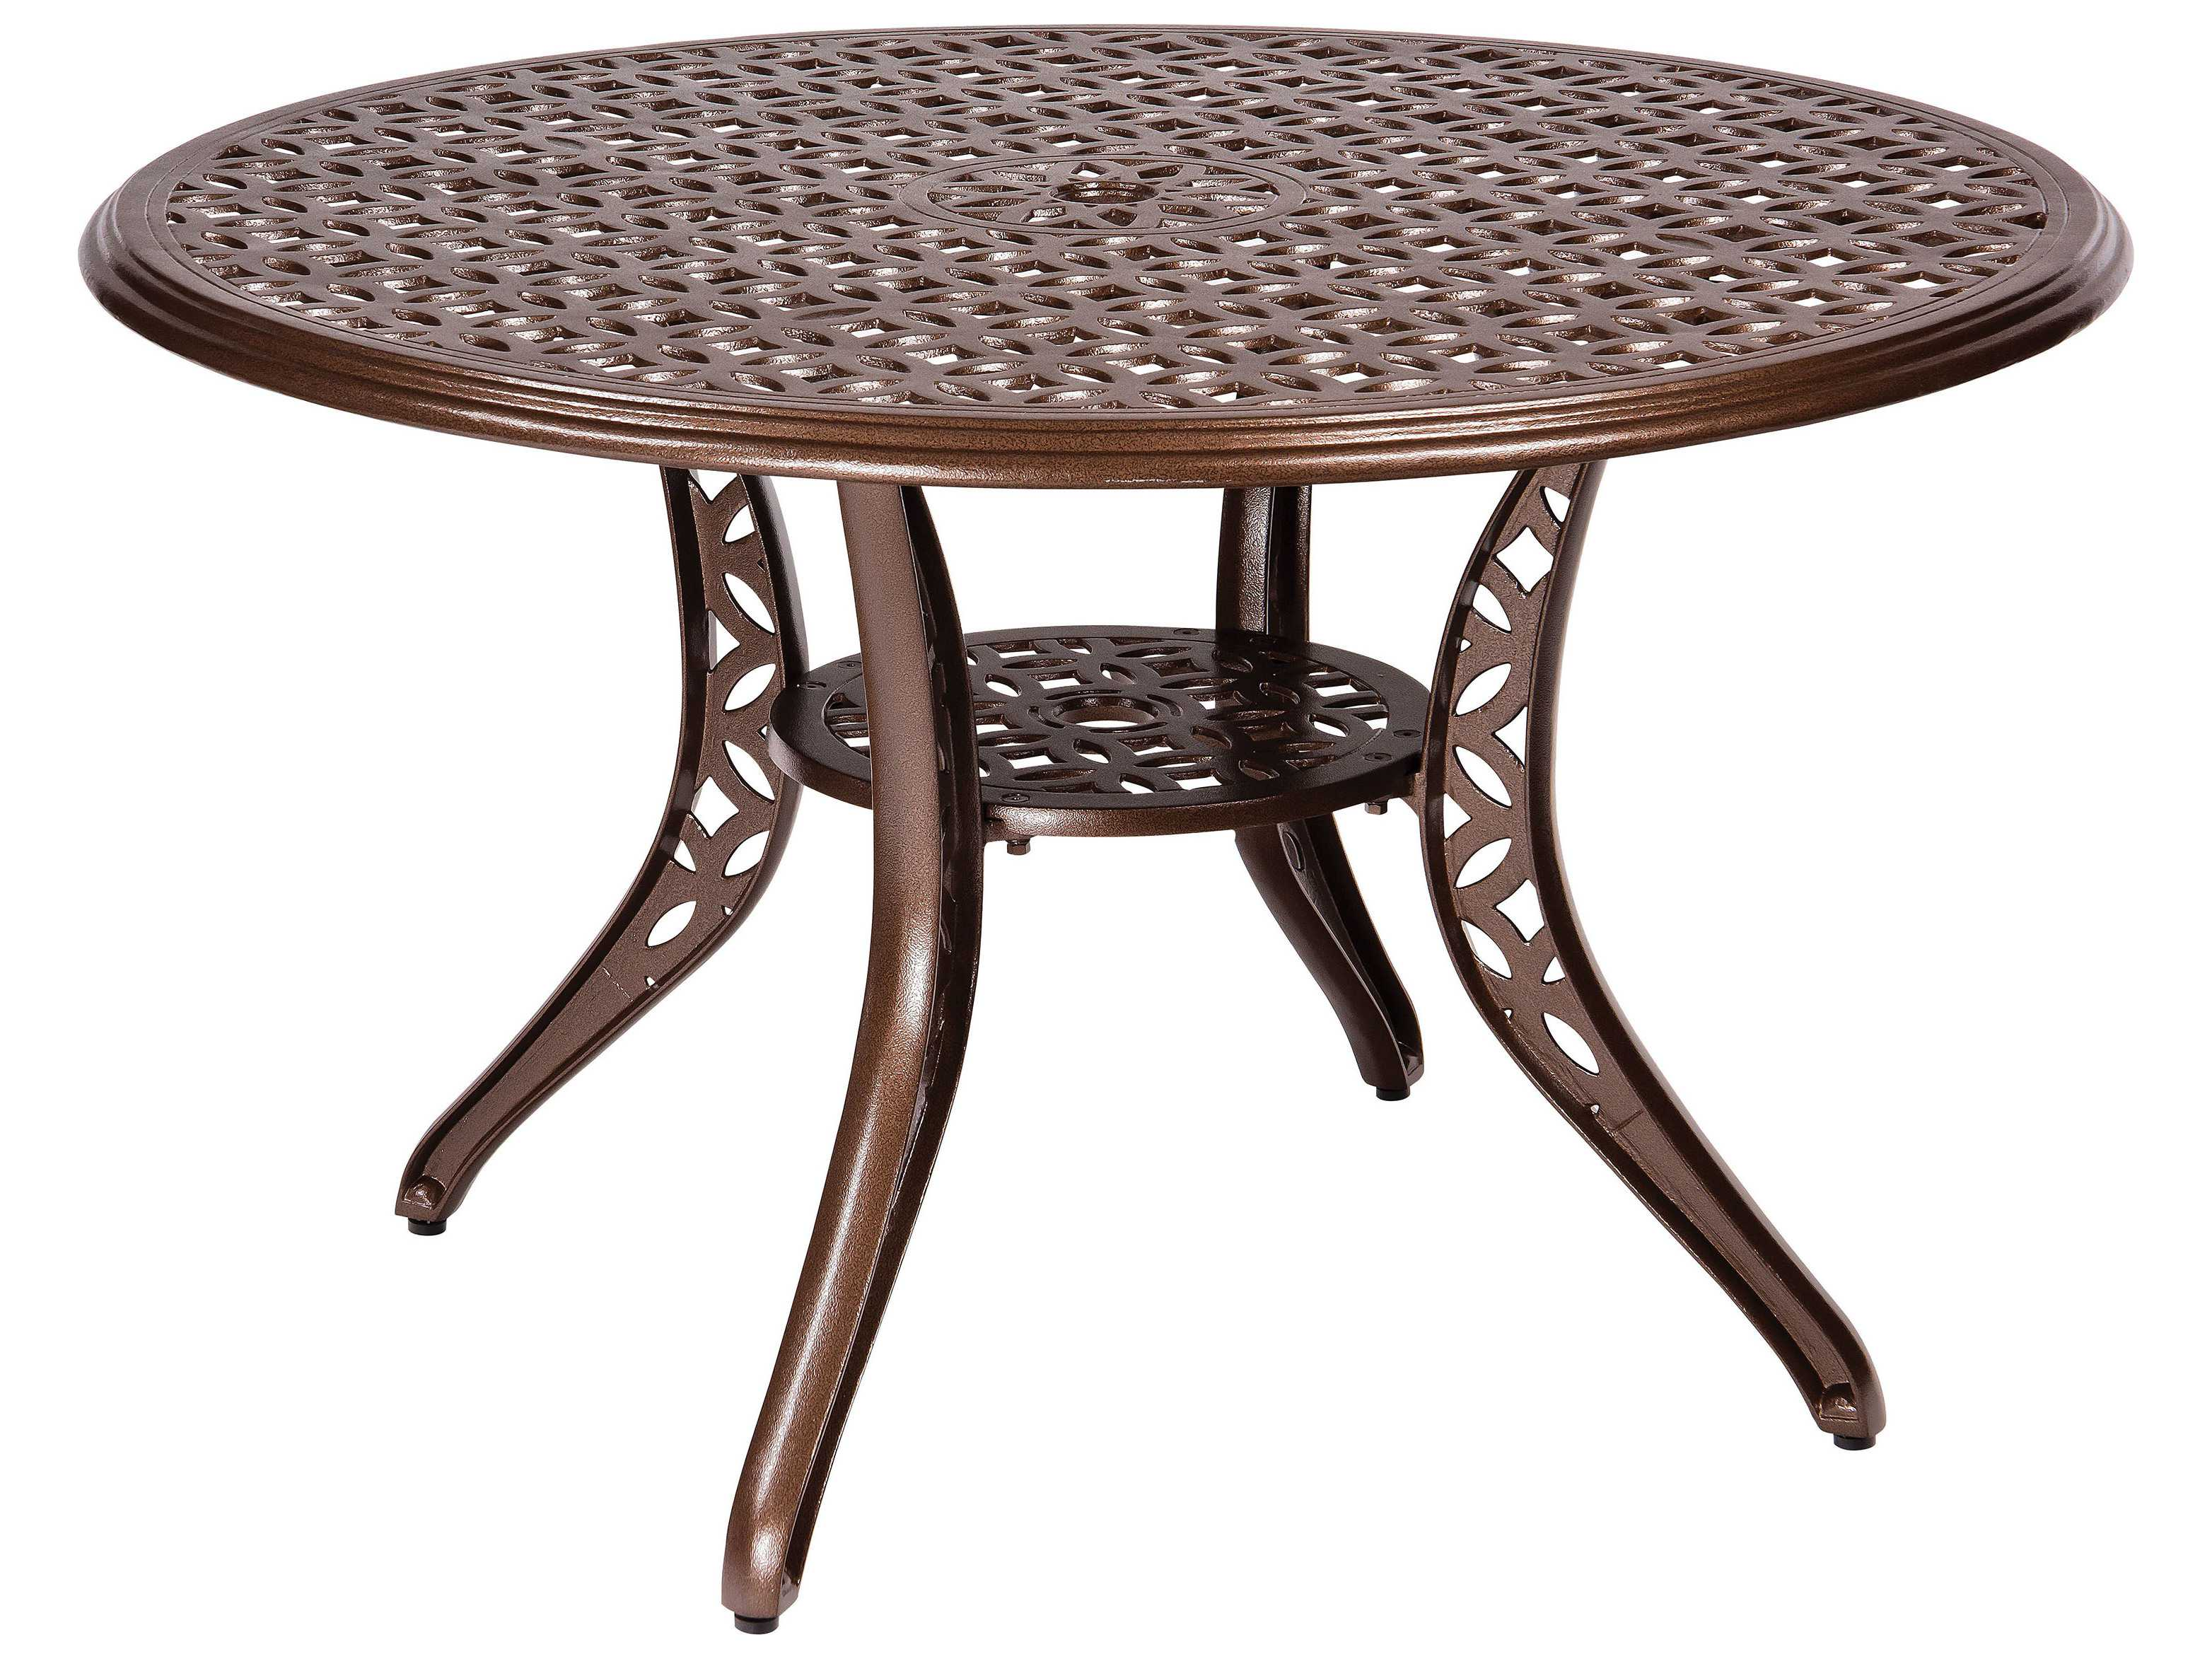 Woodard casa cast aluminum 48 round dining table with - Aluminium picnic table with umbrella ...